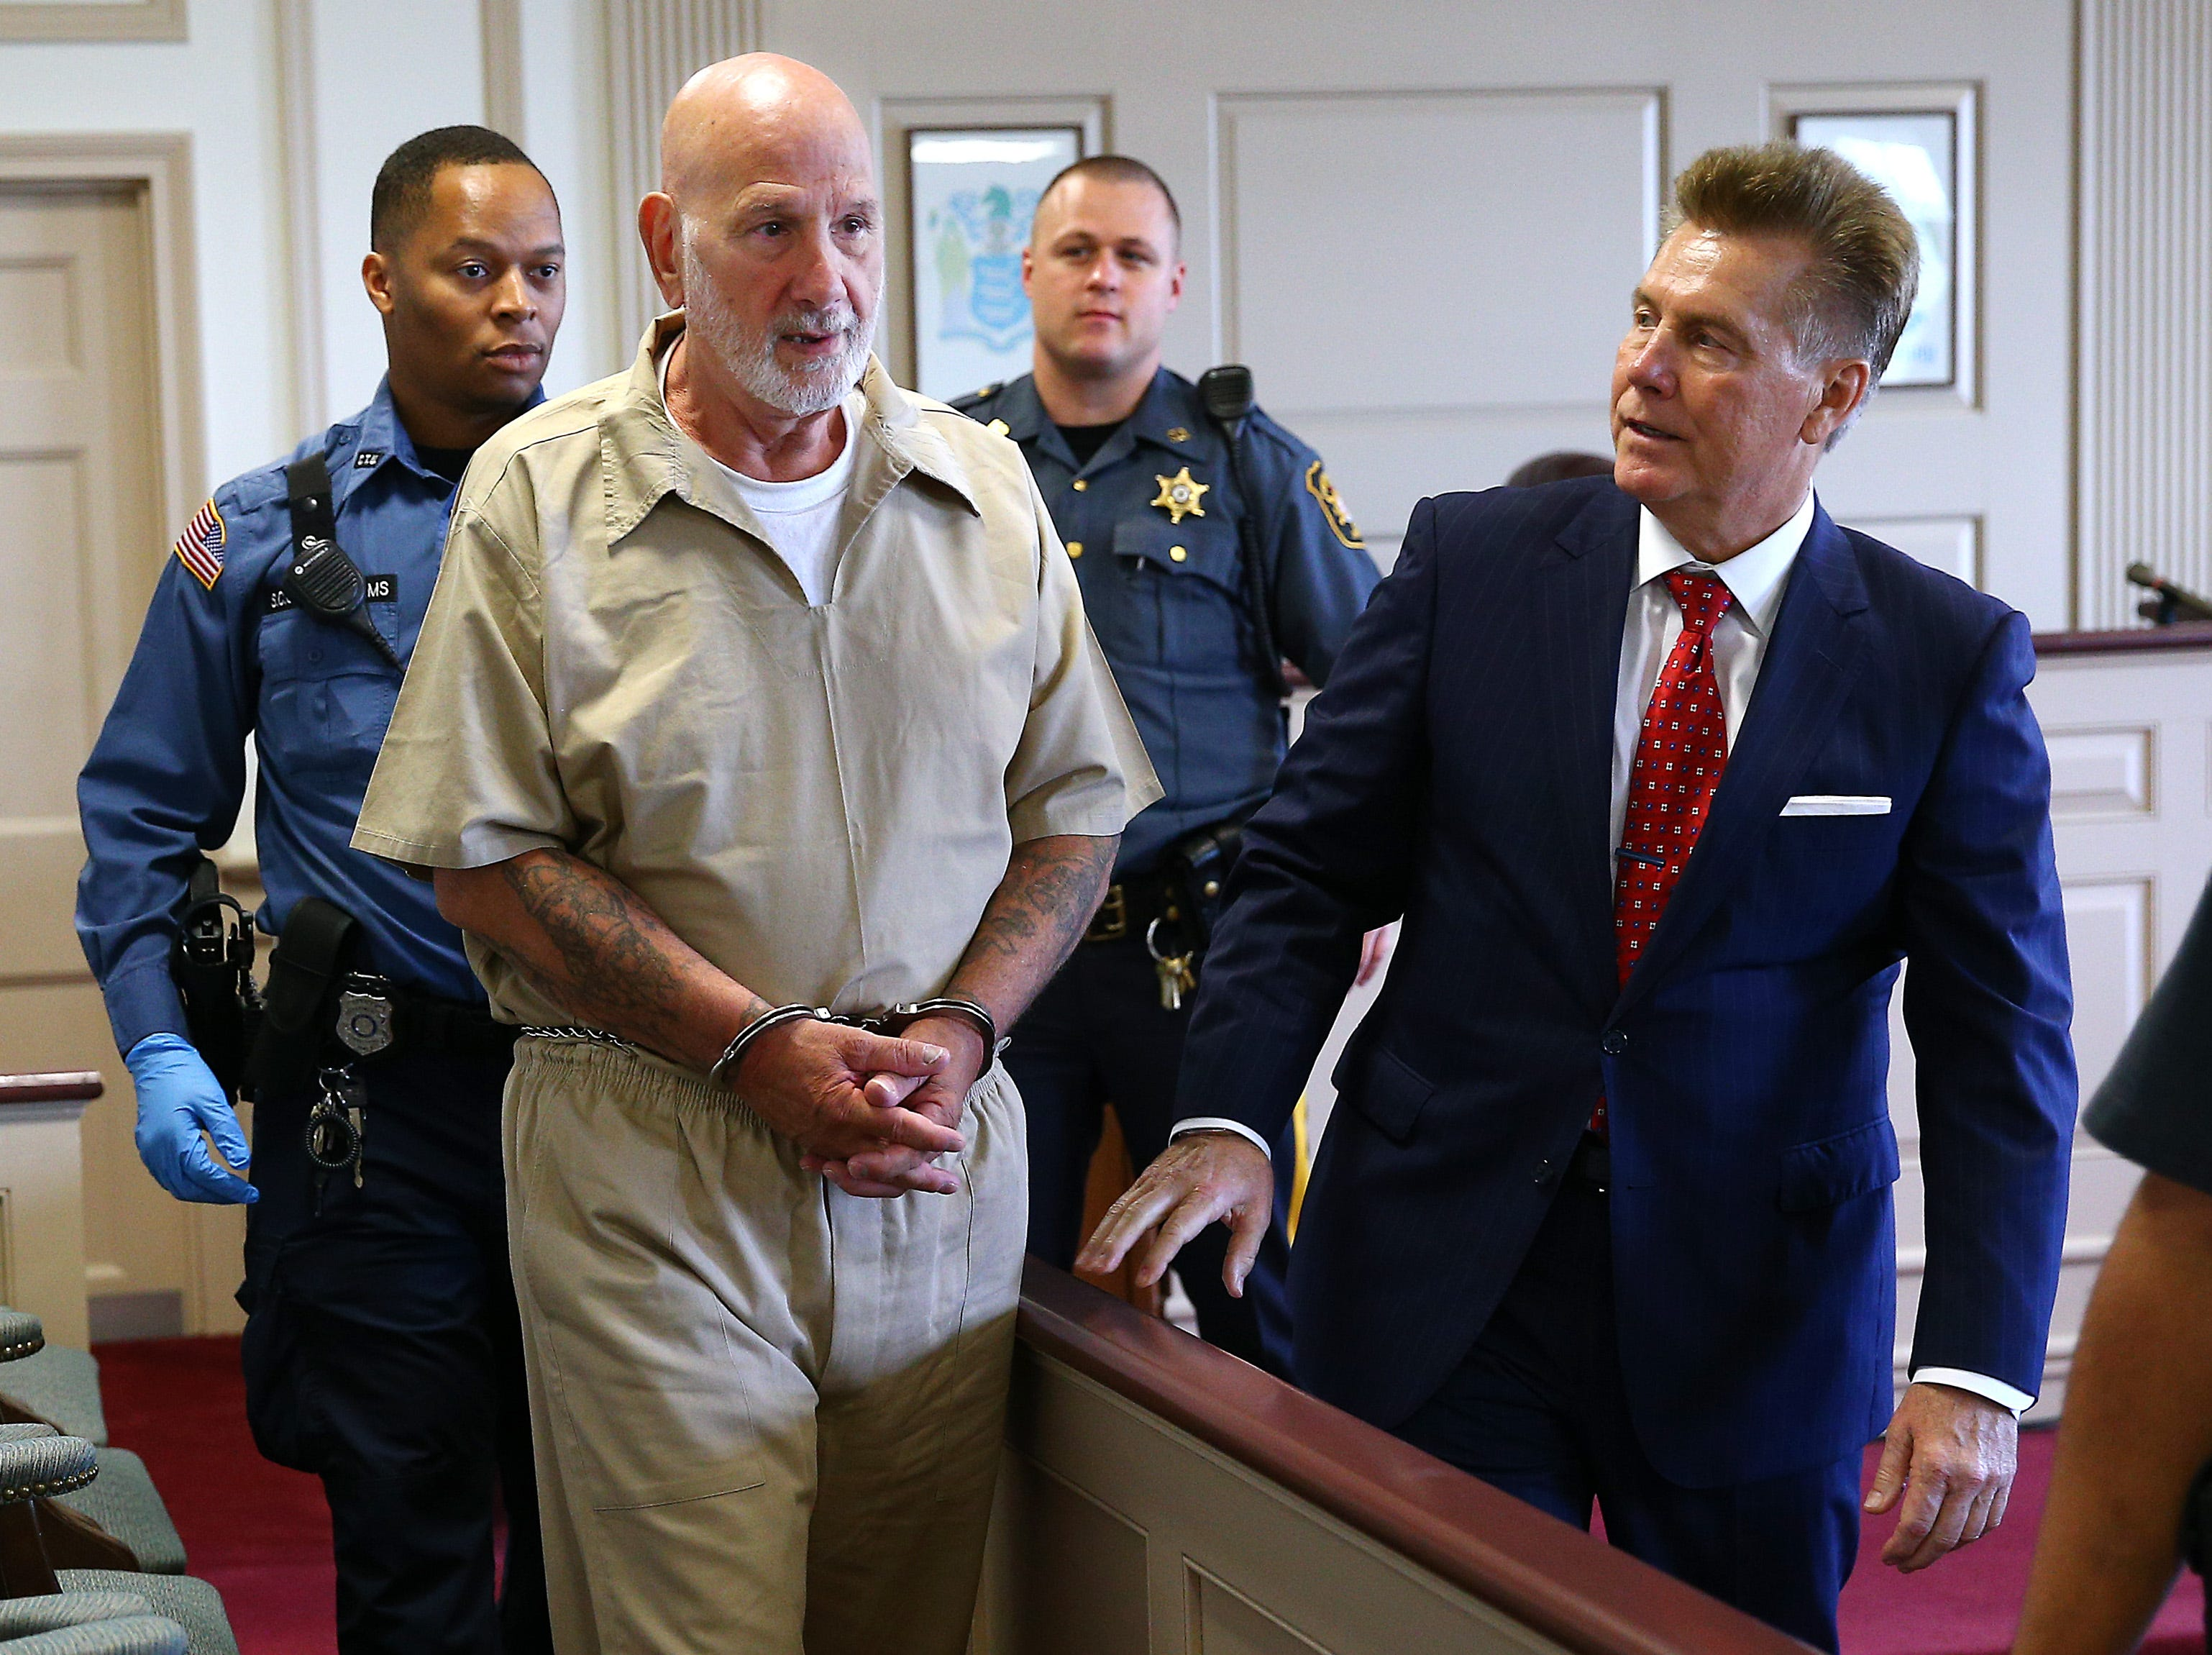 James Koedatich walks into Morris County Superior Court beside attorney Edward Bilinkas. The convicted murderer wants his DNA tested to prove he did not rape and murder Parsippany teenager Amie Hoffman in 1982. July 16, 2018. Morristown, New Jersey